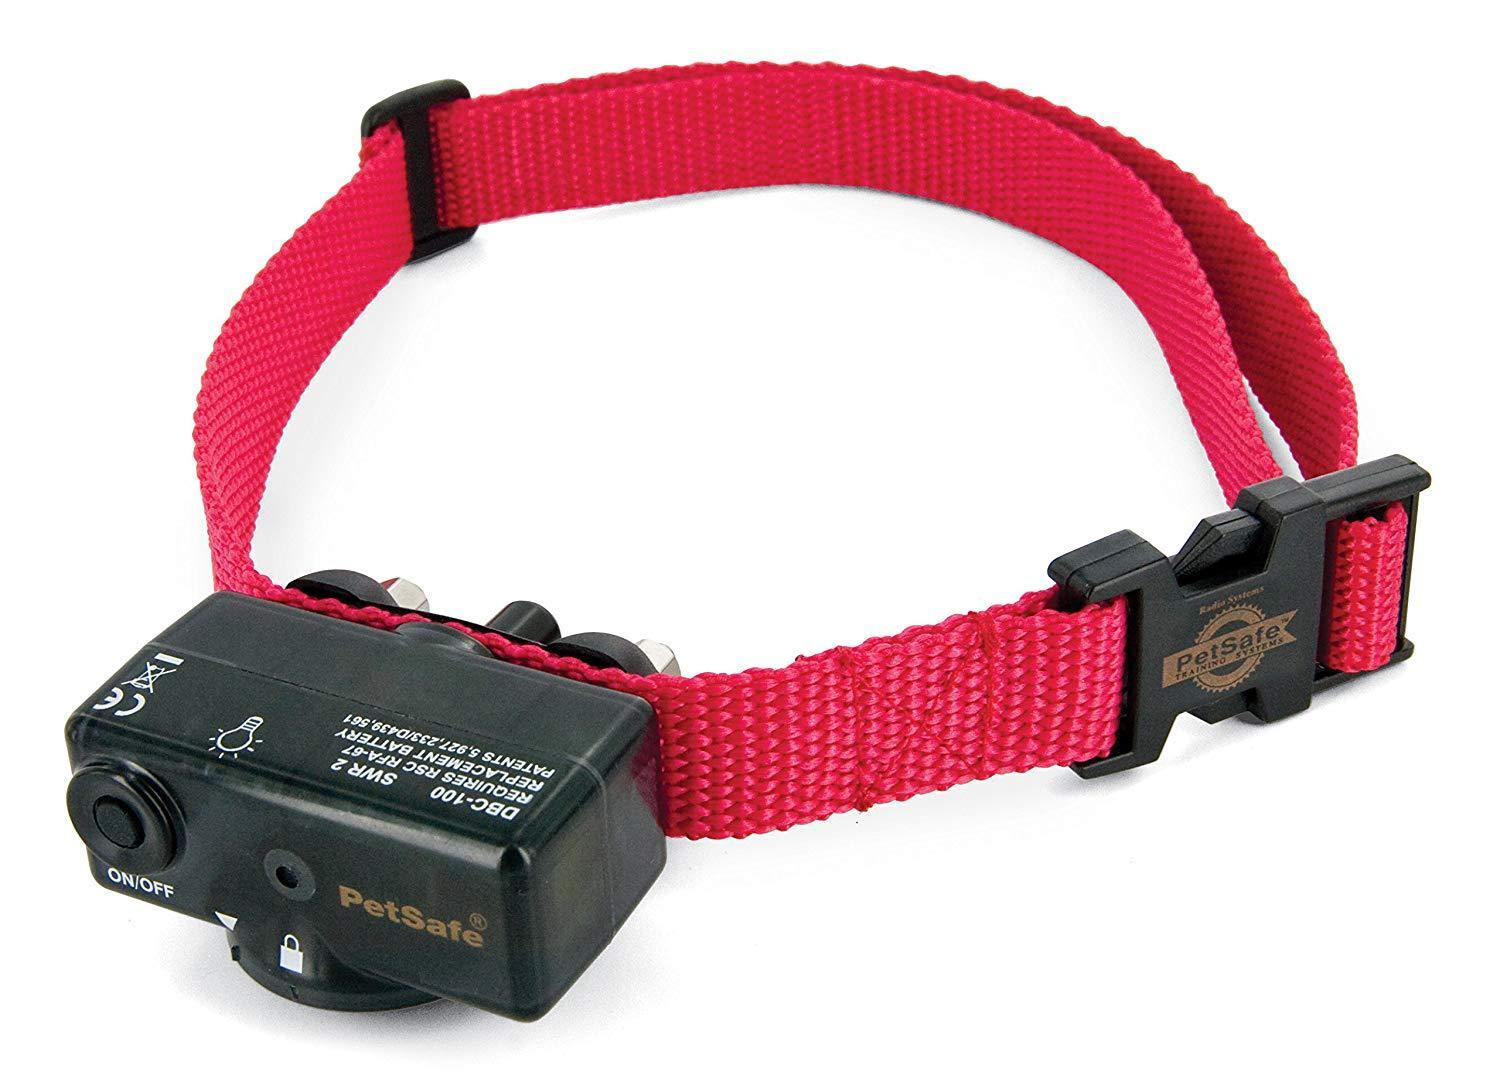 PetSafe Deluxe Bark Control Collar PDBC-300 for 3.6 Kg up Dogs Waterproof 3 Mode